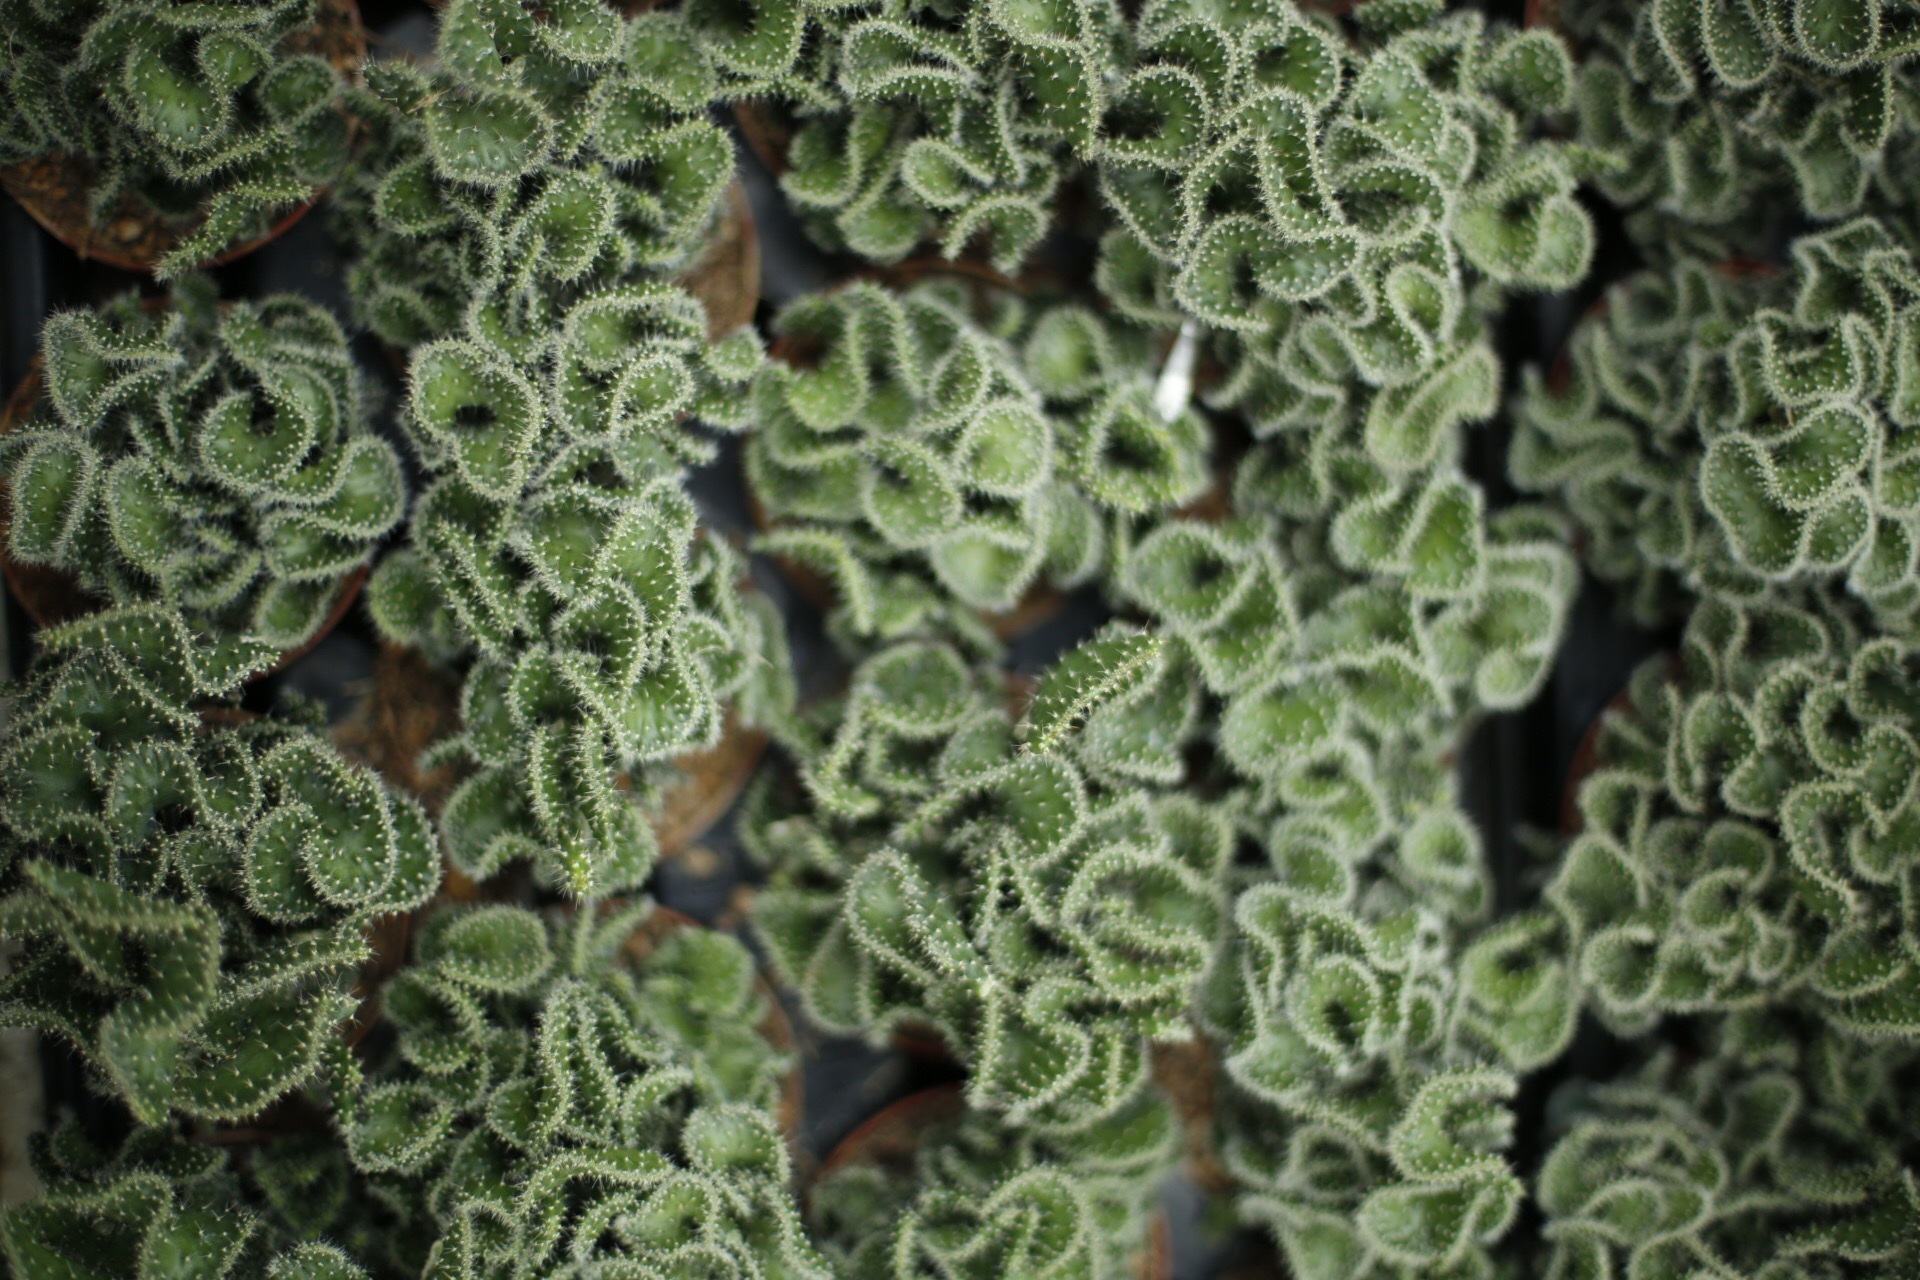 cactus from above